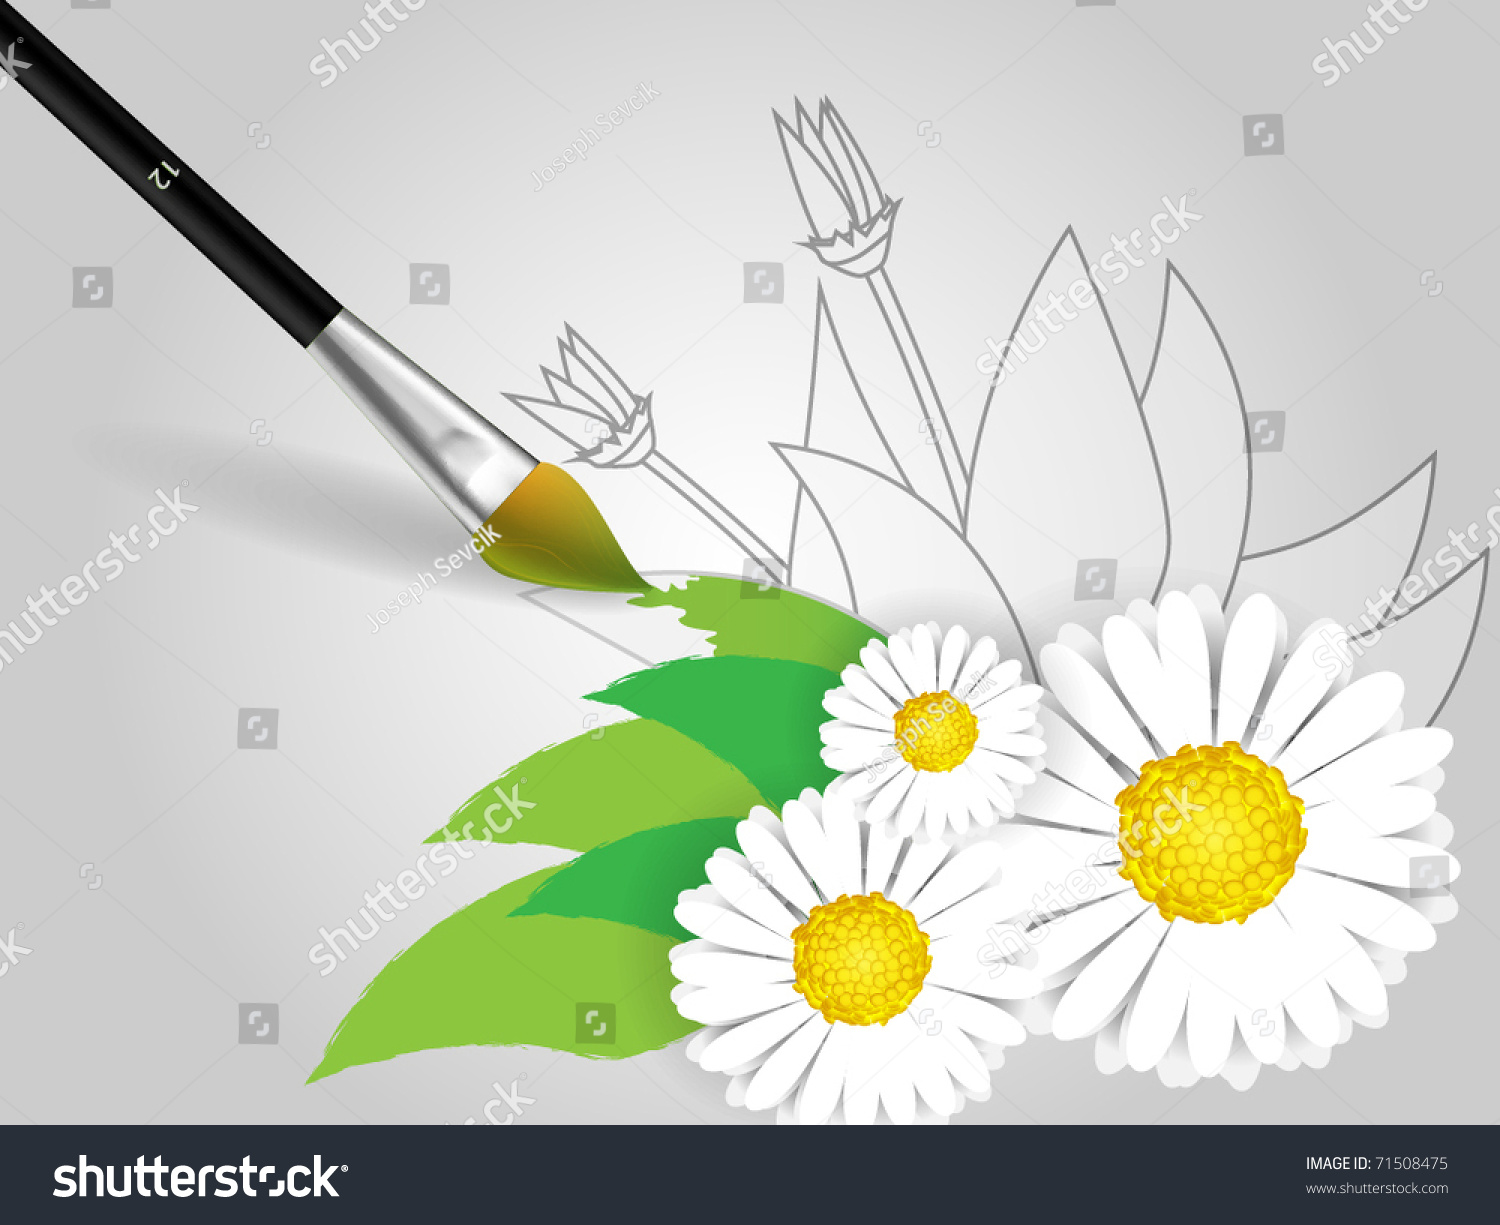 Draw flowers on paper brush stock vector 71508475 shutterstock draw flowers on paper with brush mightylinksfo